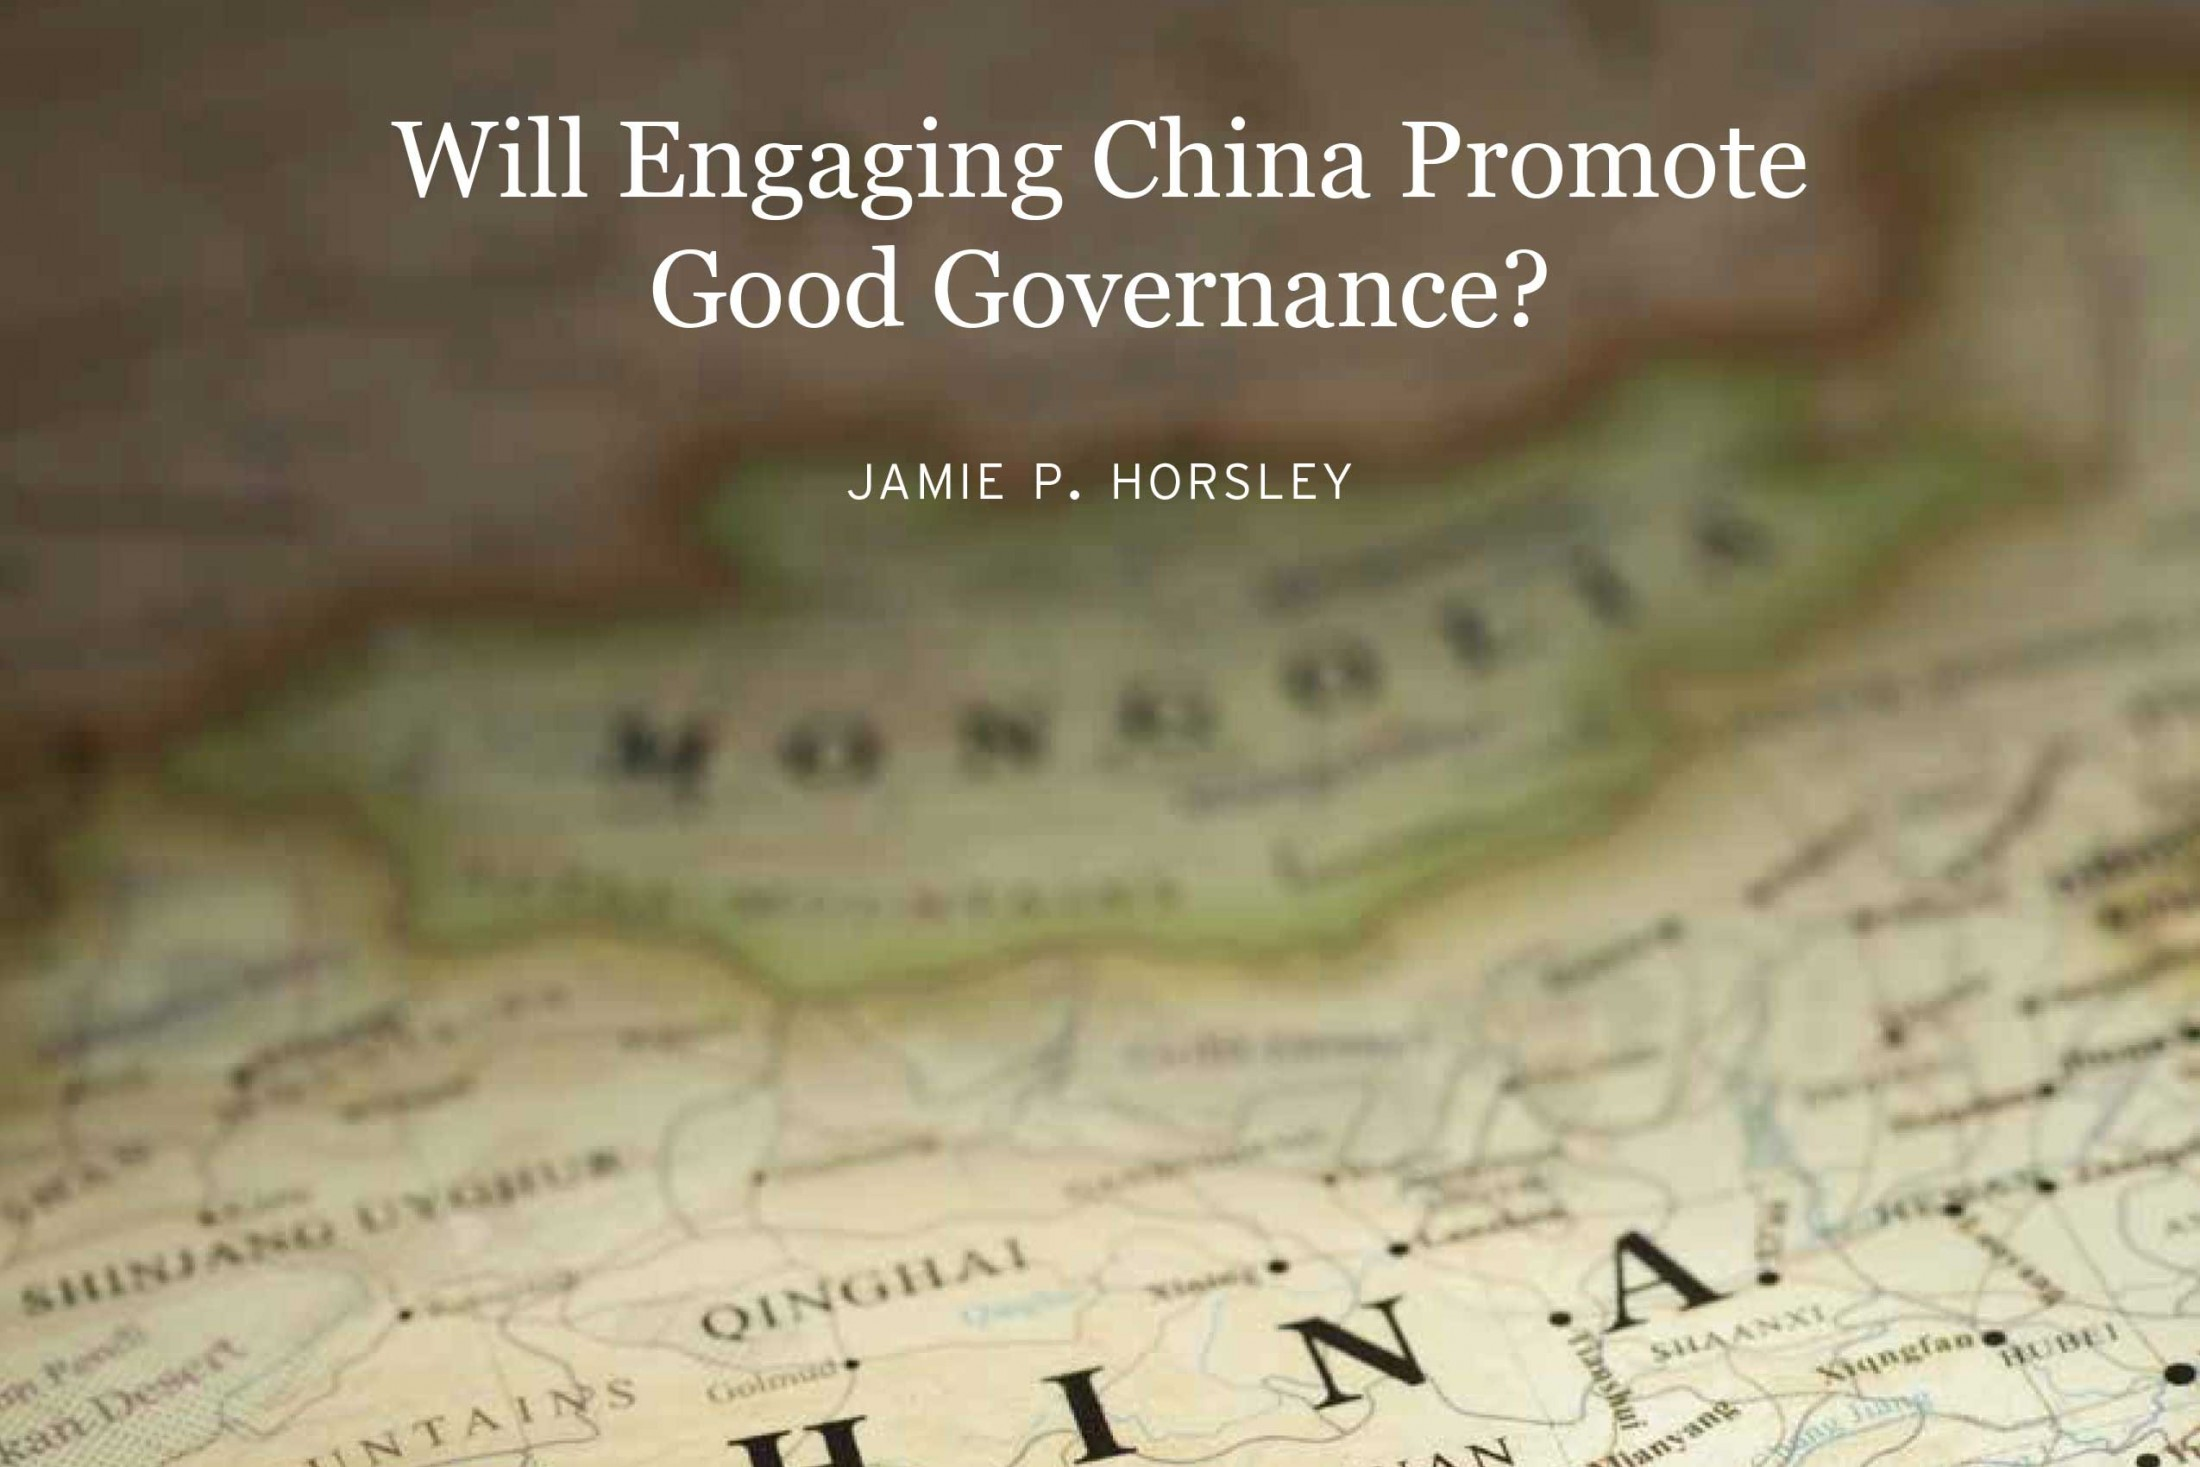 Jamie Horsley Publishes Report on Good Governance in China